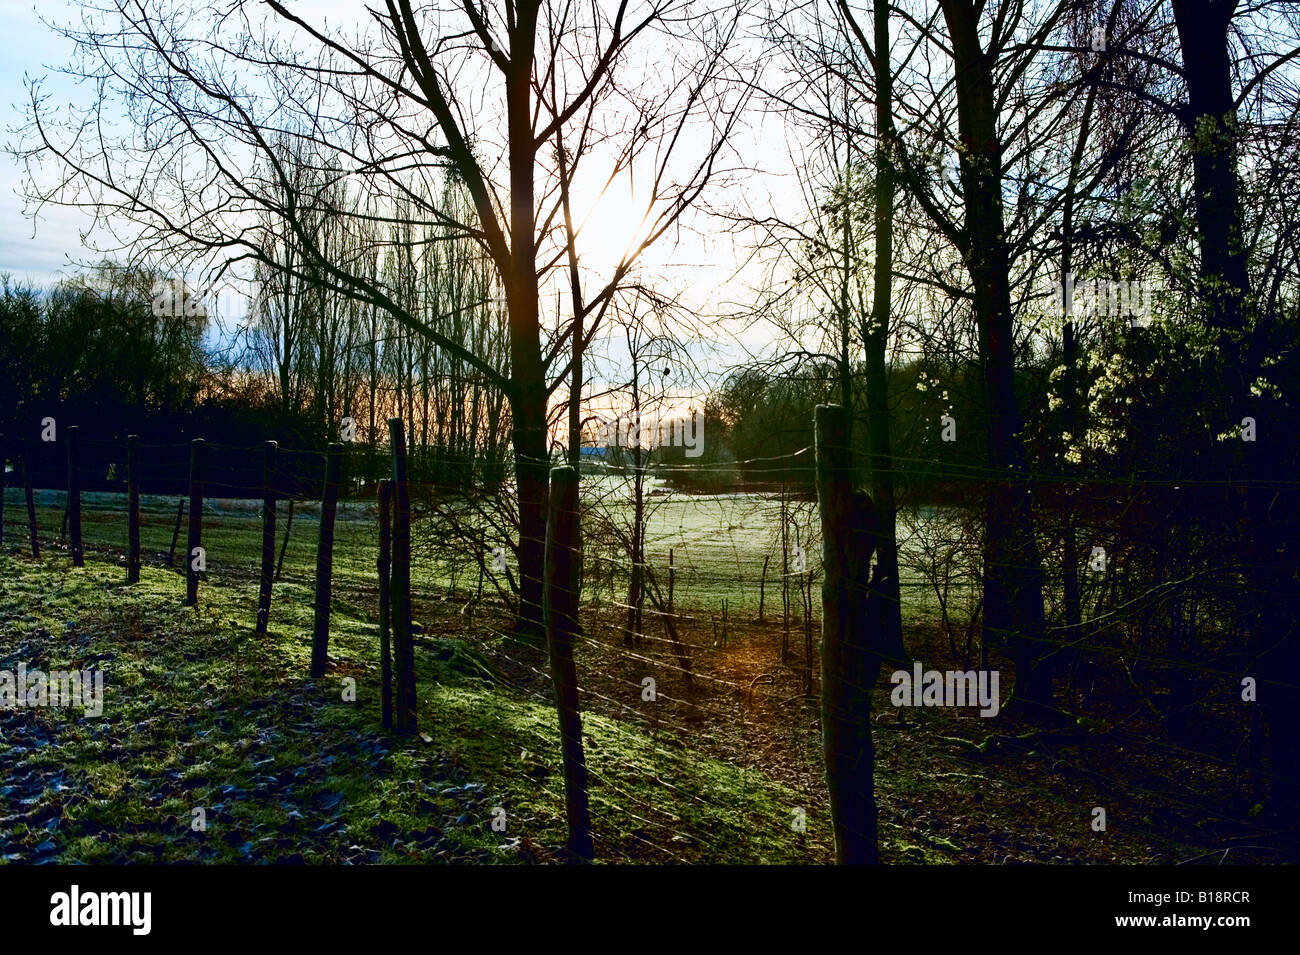 sun rising through trees and fence - Stock Image